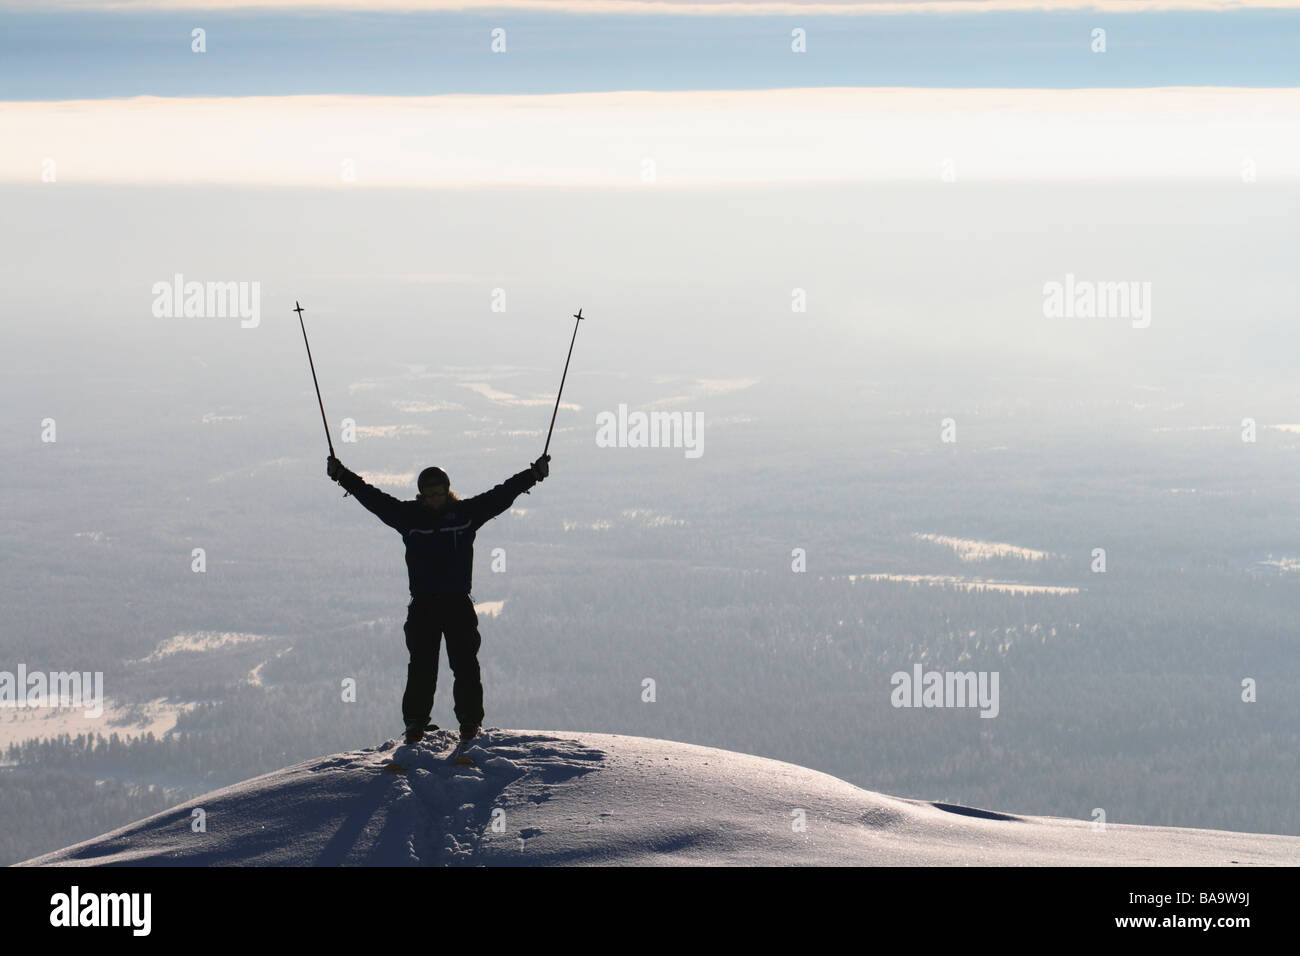 A skier with reached arms Sweden - Stock Image